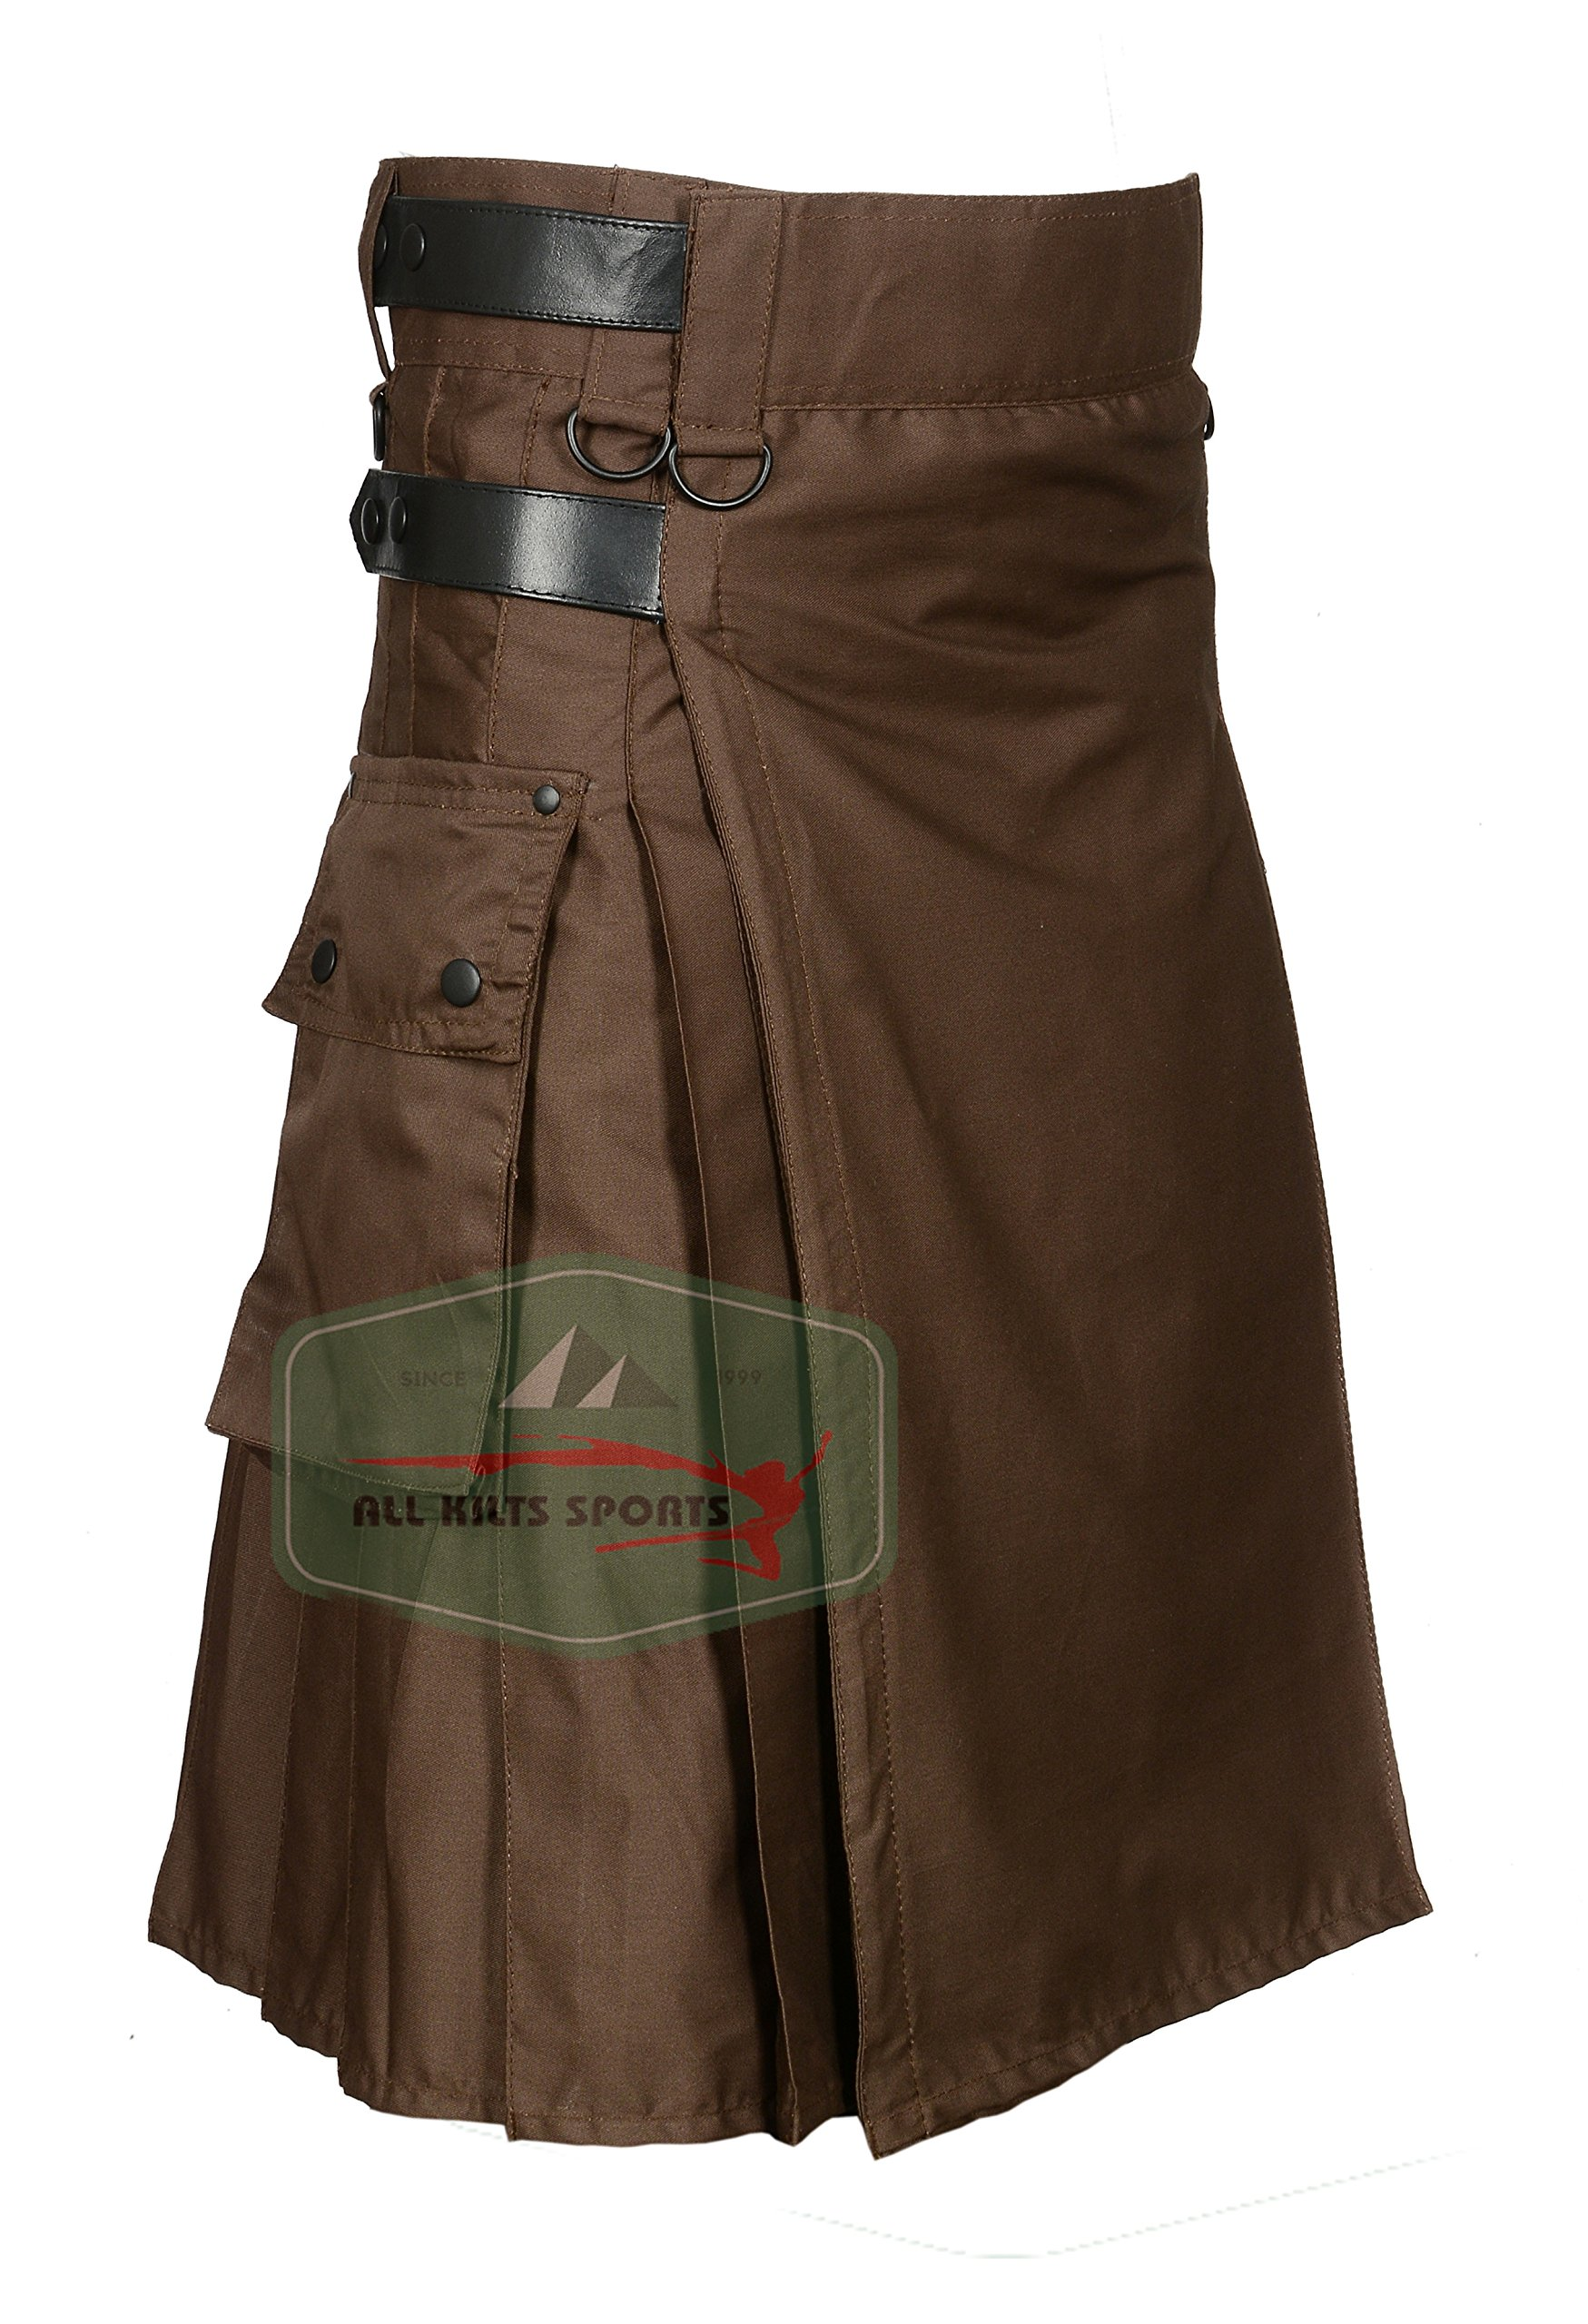 Chocolate Brown Leather Strap Utility Kilt For Active Man Kilt Wedding Kilts (32)